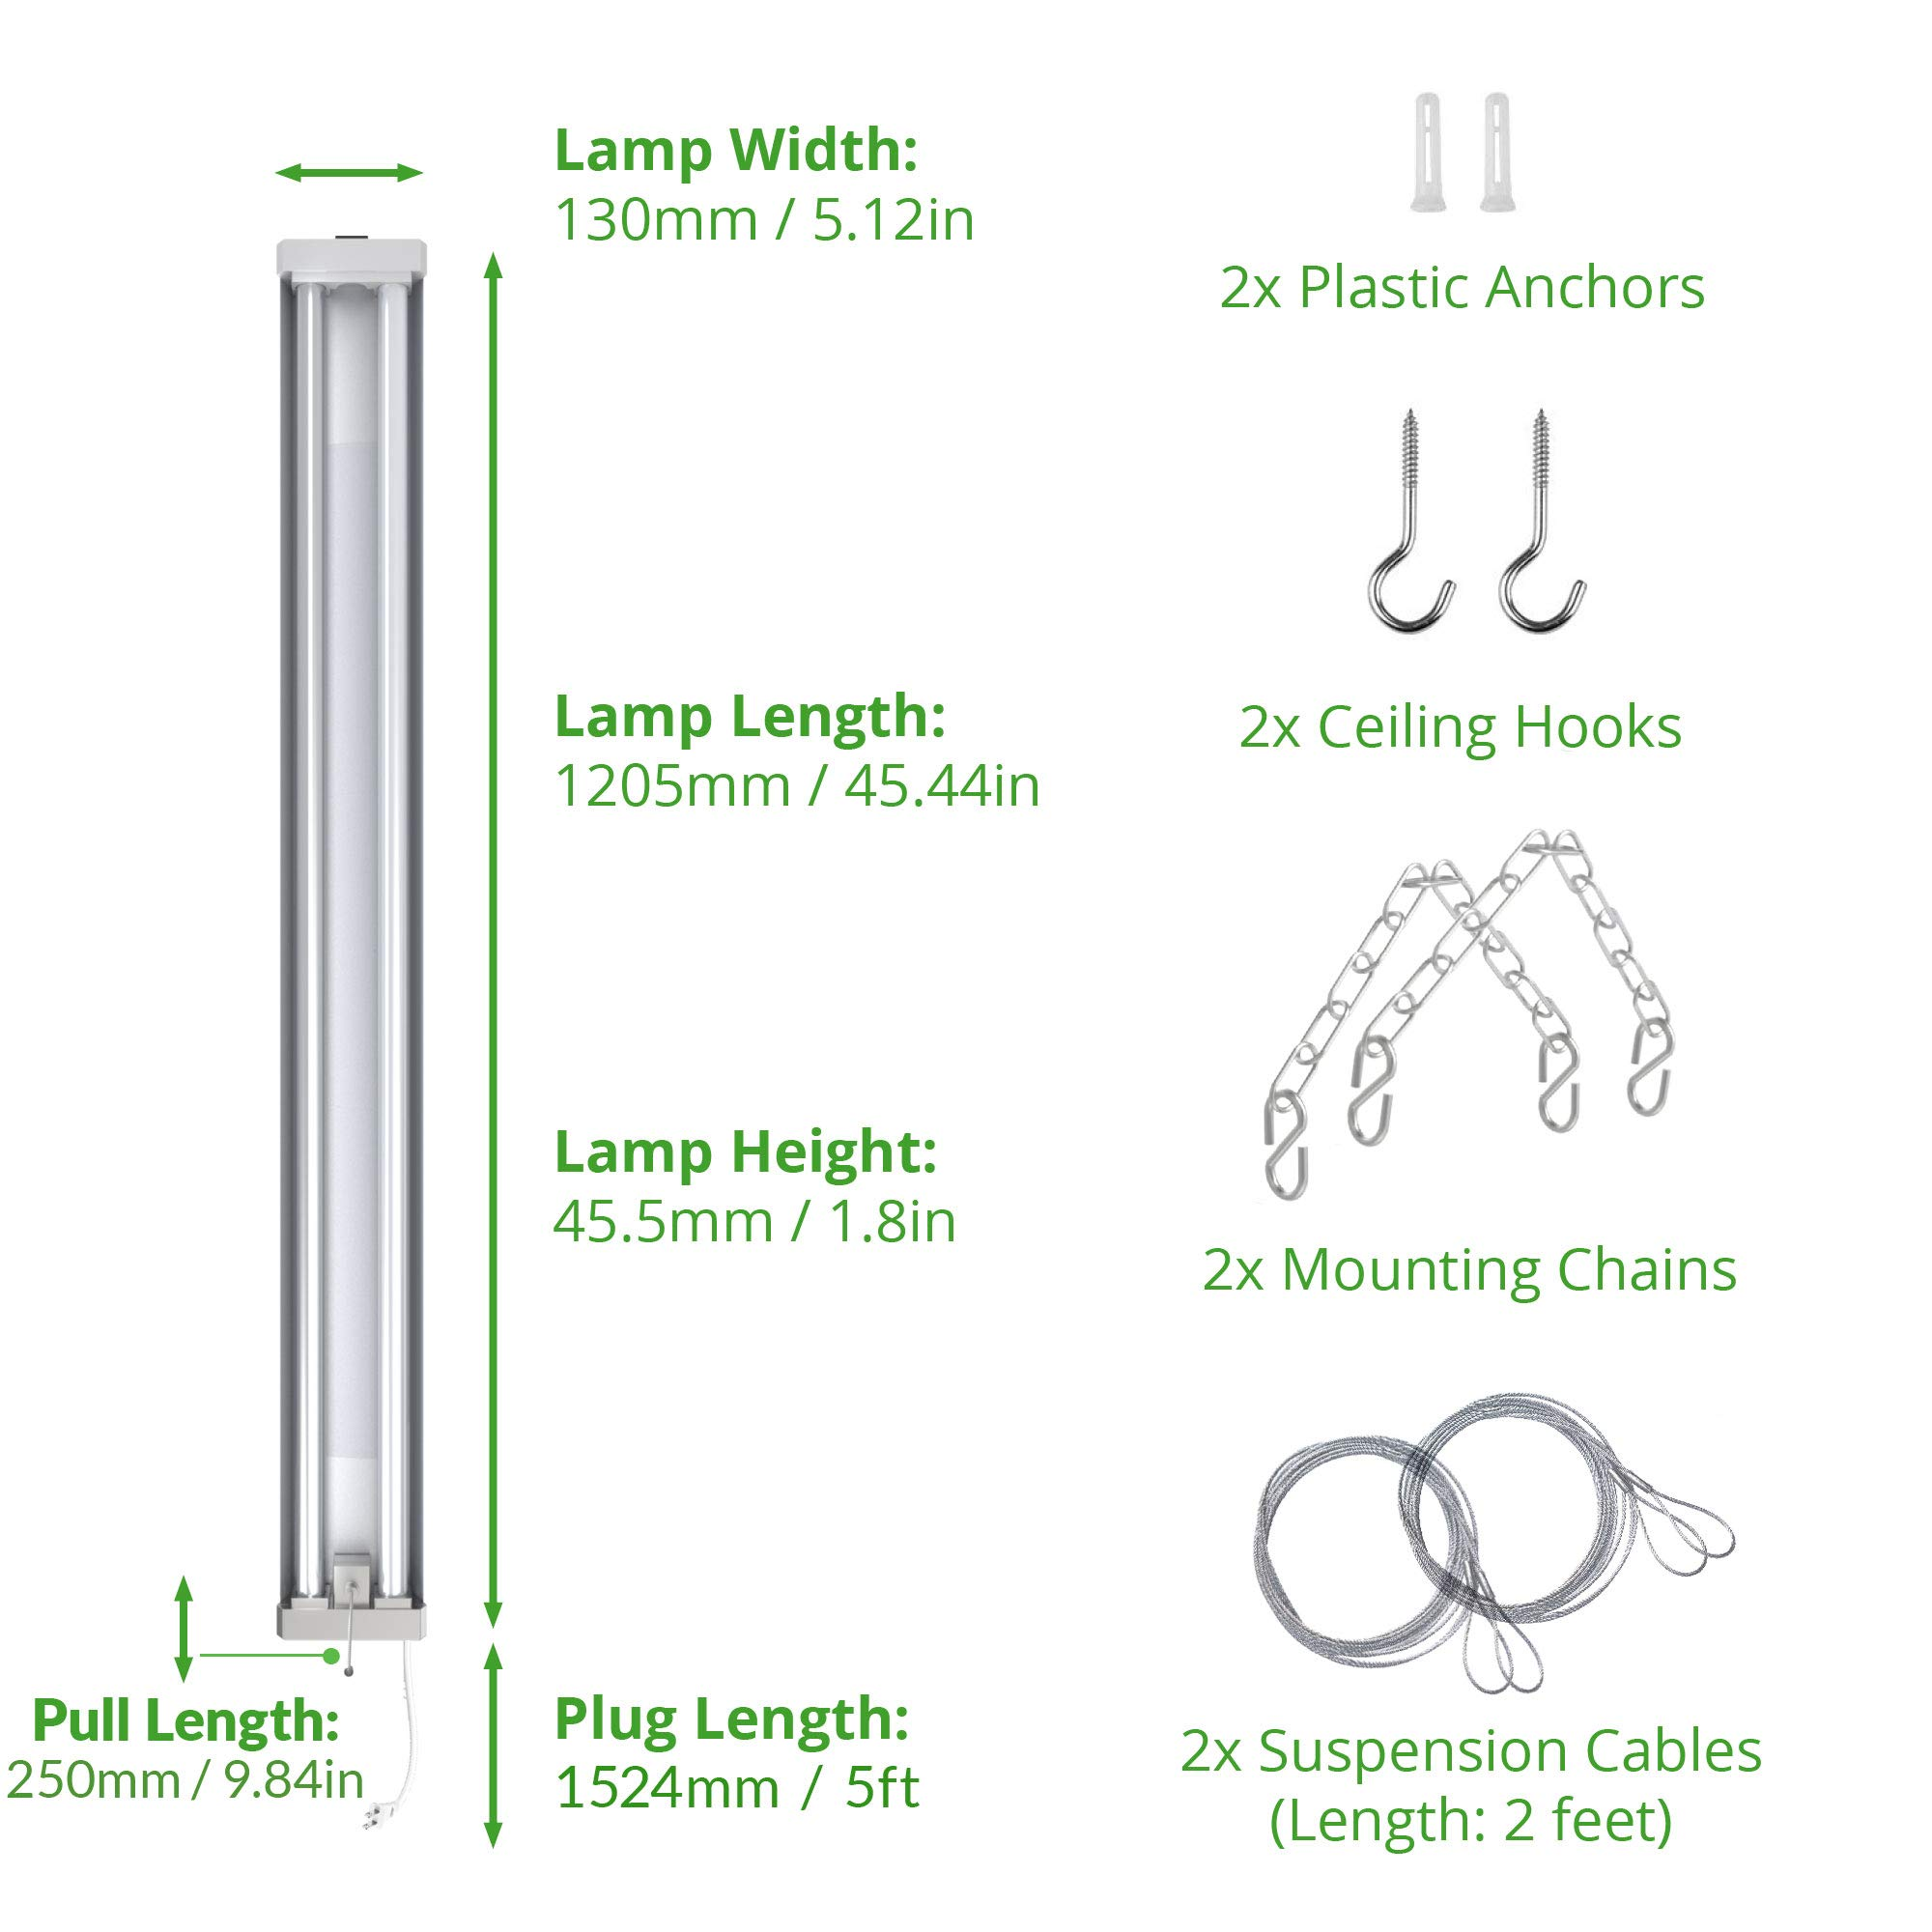 Sunco Lighting 4 Pack 4ft 48 inch LED Utility Shop Light 40W (260W Equivalent) 5000K Kelvin Daylight, 4000 Lumens, Double Integrated Linkable Garage Ceiling Fixture, Frosted - Energy Star/ETL Listed by Sunco Lighting (Image #7)